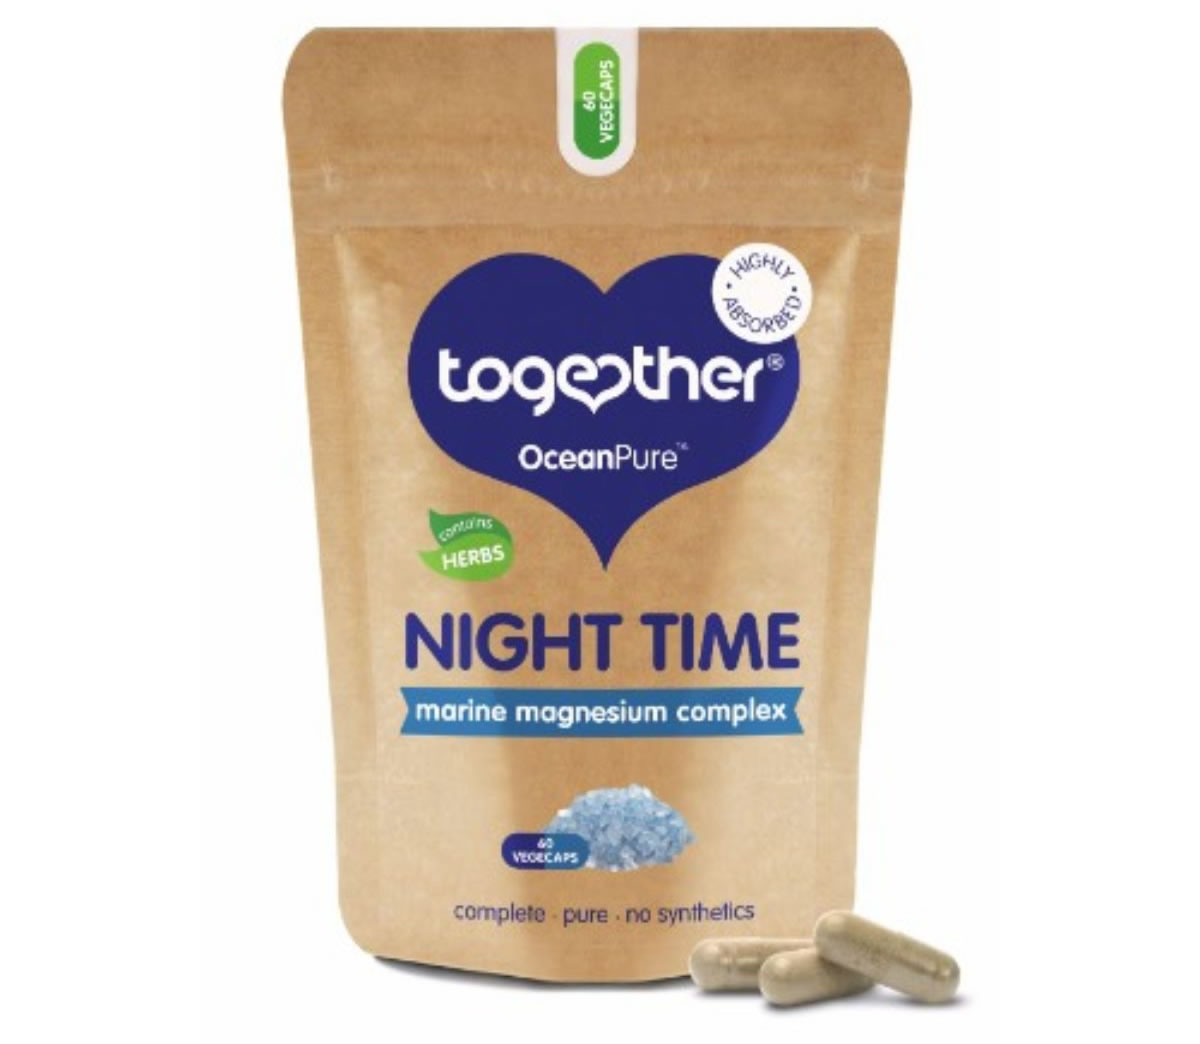 Together, Oceanpure Night Time Magnesium Complex, 60 capsules